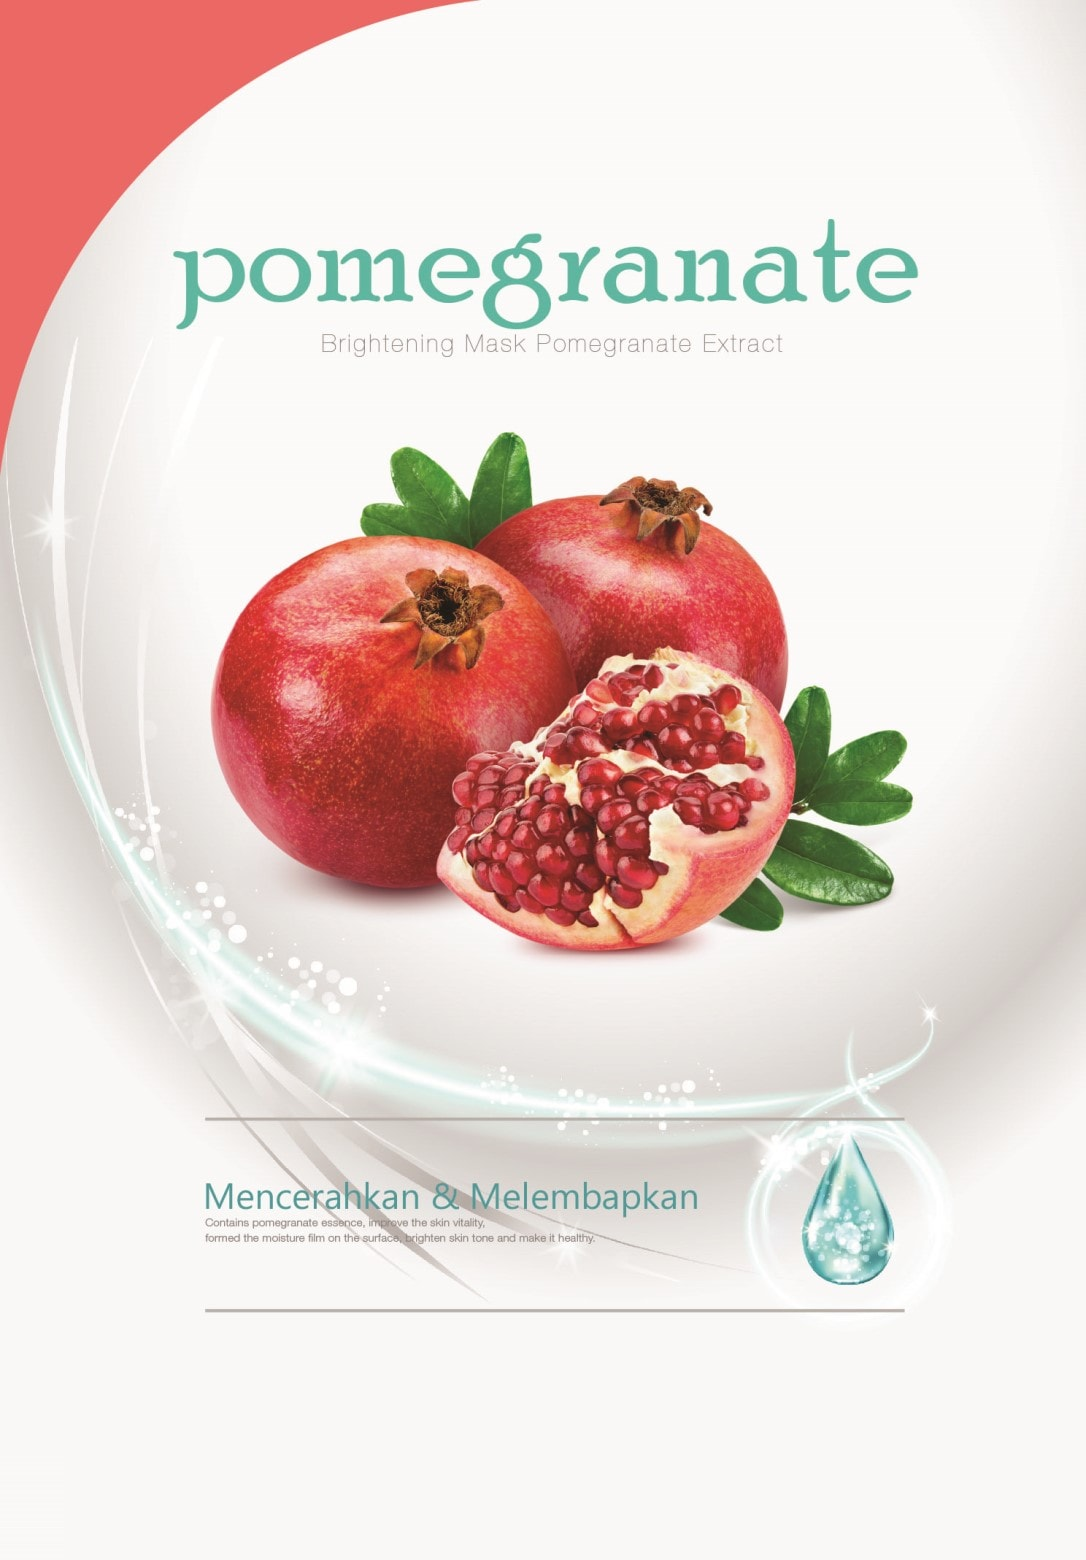 SK7 Brightening Mask Pomegranate Extract